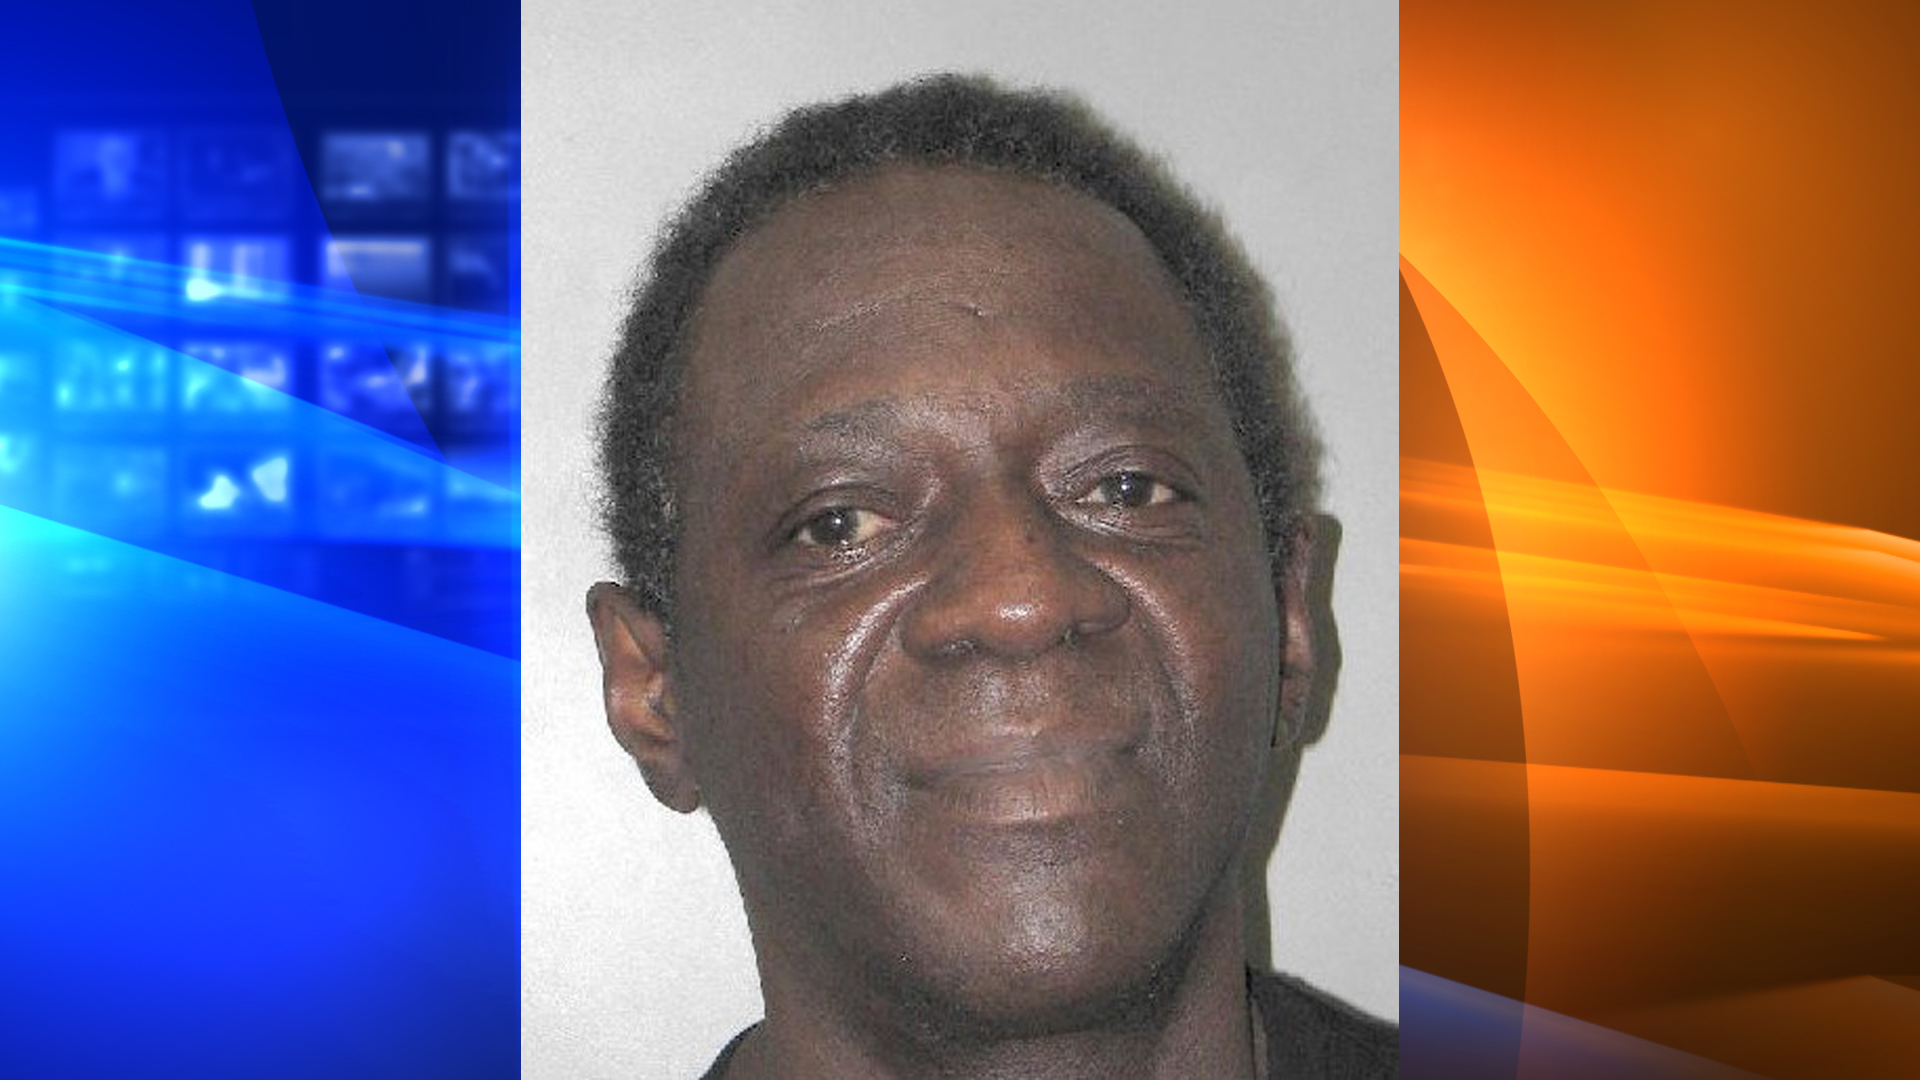 William Jonathan Drayton Jr., known as Flavor Flav, is shown in a photo released by the Henderson Police Department on Oct. 19, 2021.